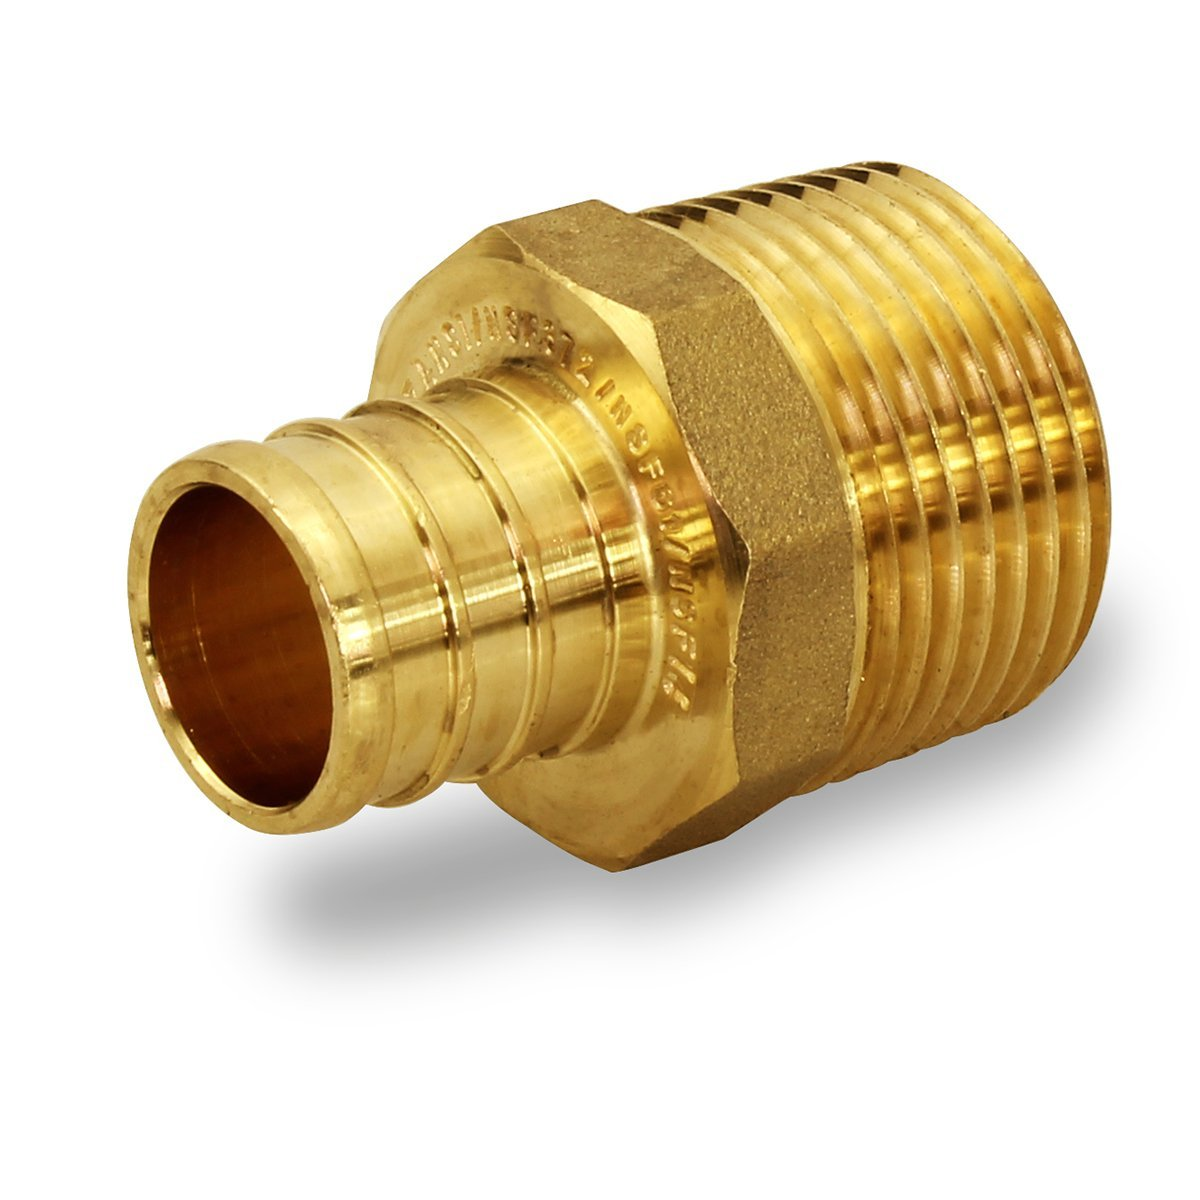 Everflow EPMA3410-NL 3/4 Inch x 1 Inch Lead Free Brass Adapters PEX x MIP, Brass Construction, Compatible w/ PEX Piping, Low-Cost plumbing Connection, Durability & Reliability, Easy to Install